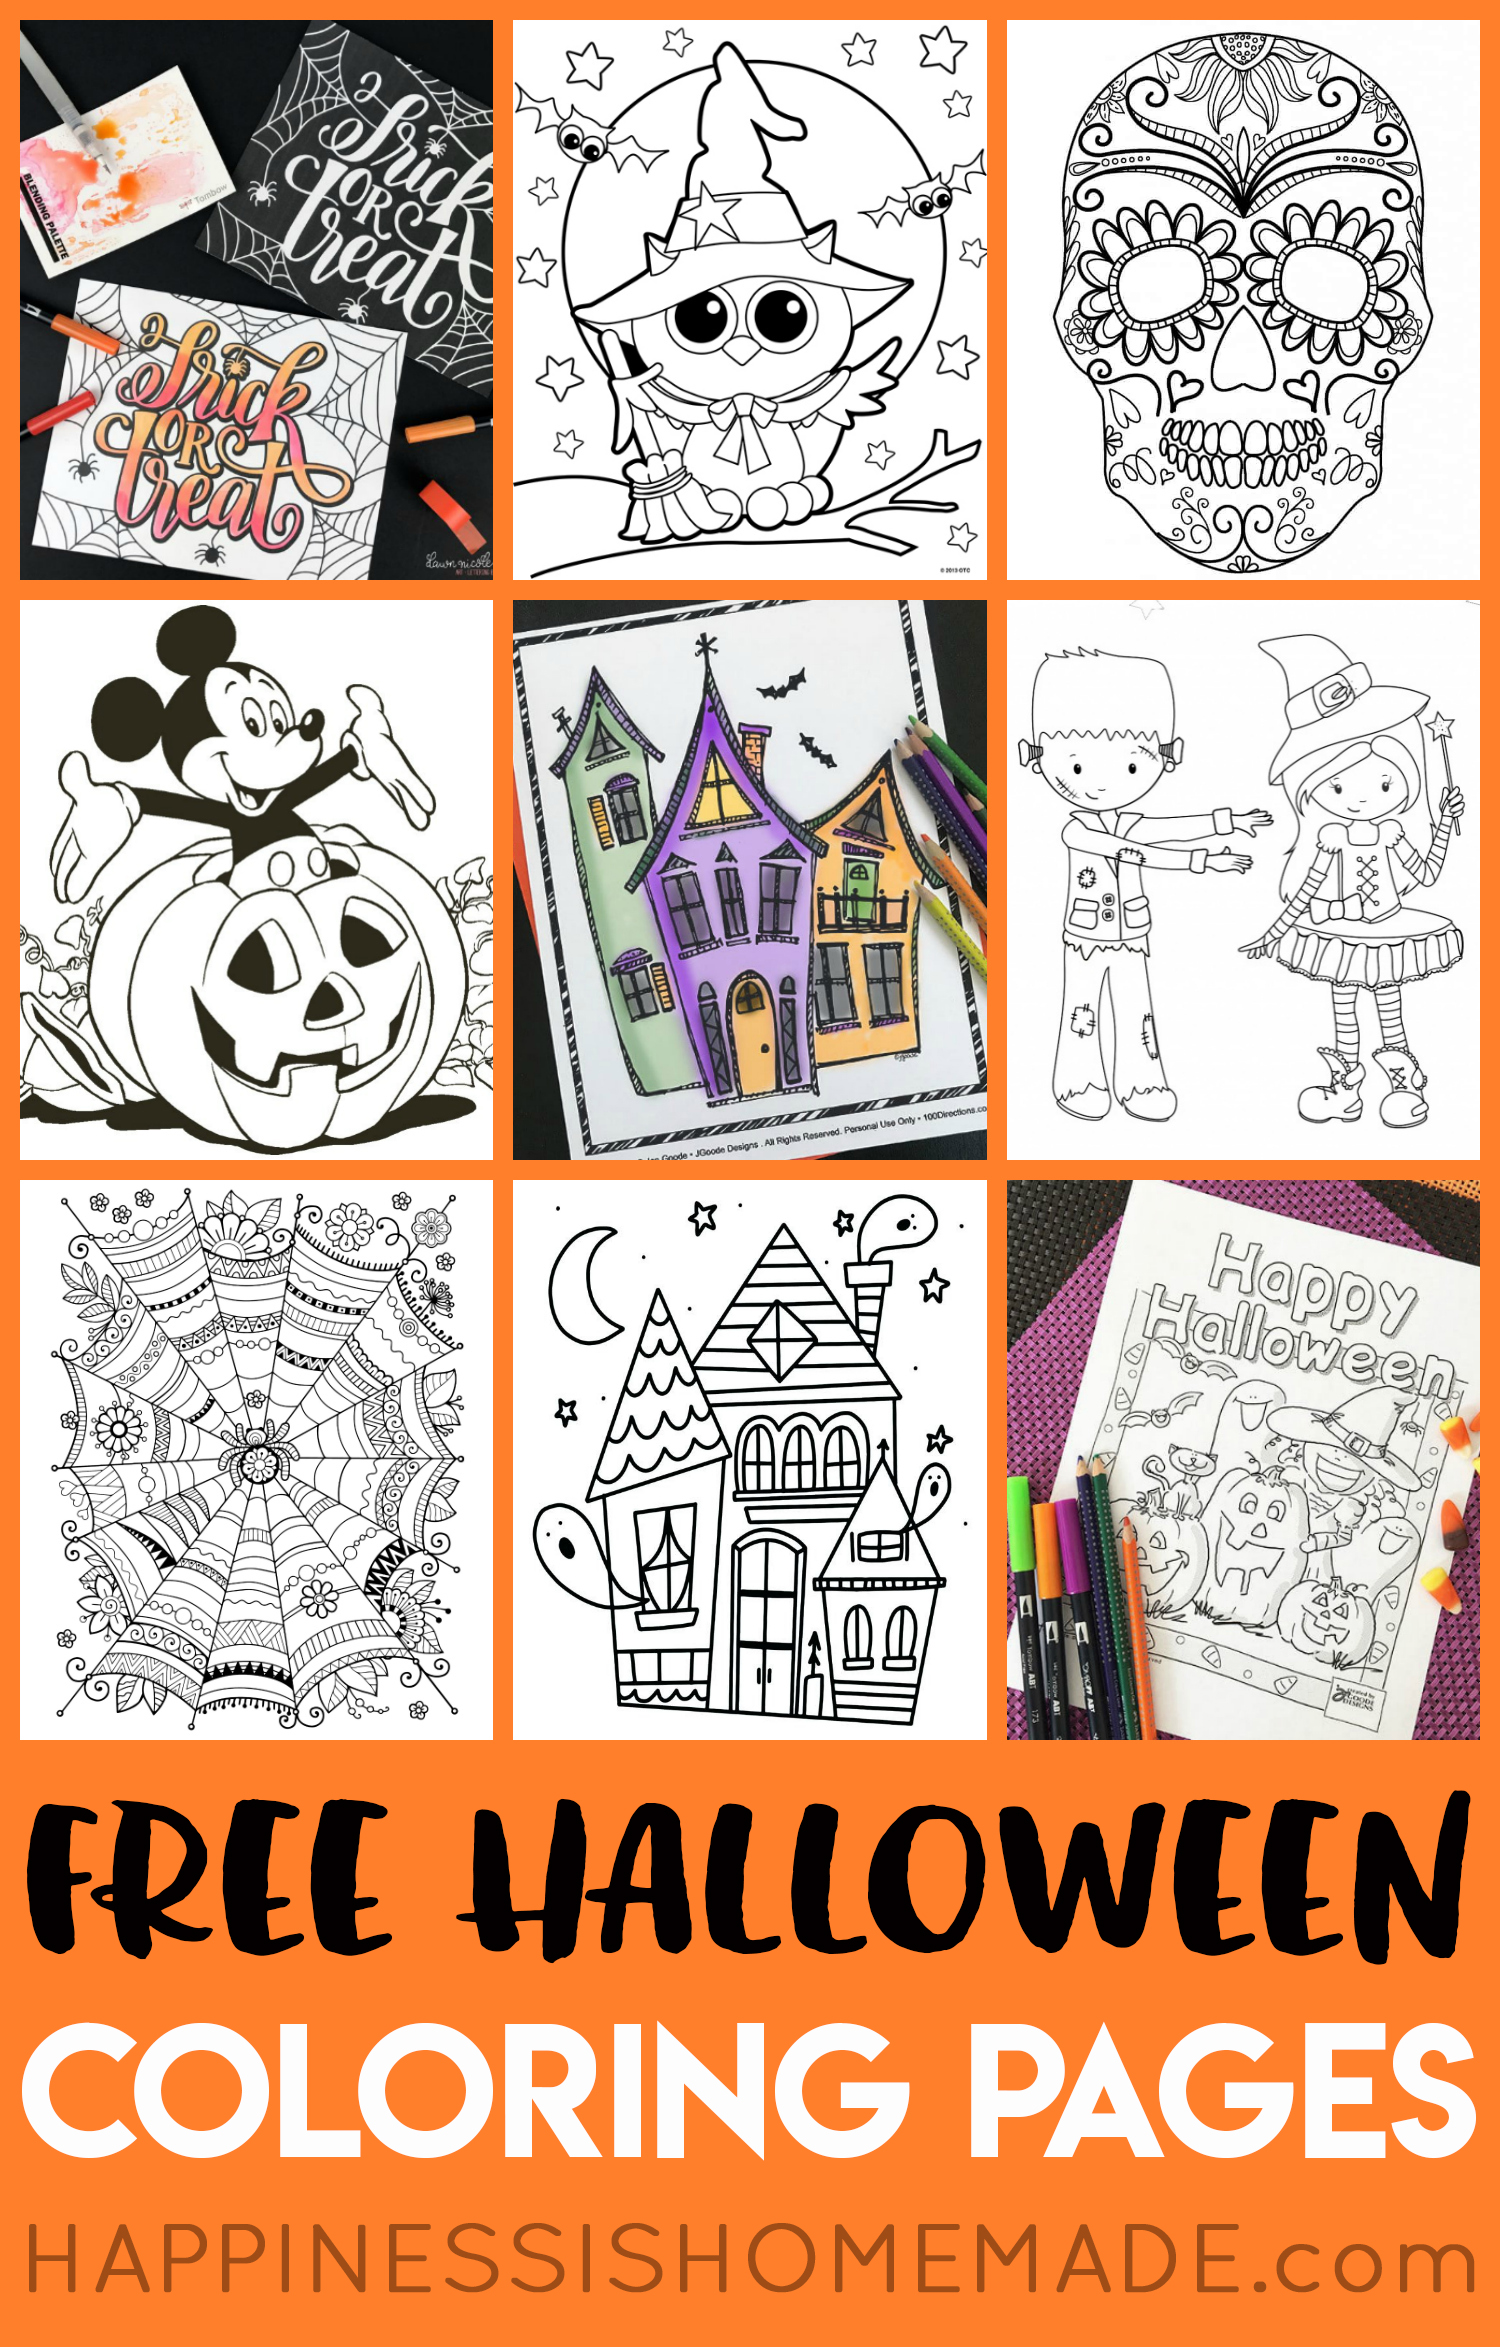 image relating to Printable Holloween Pictures named Totally free Halloween Coloring Internet pages for Older people Small children - Joy